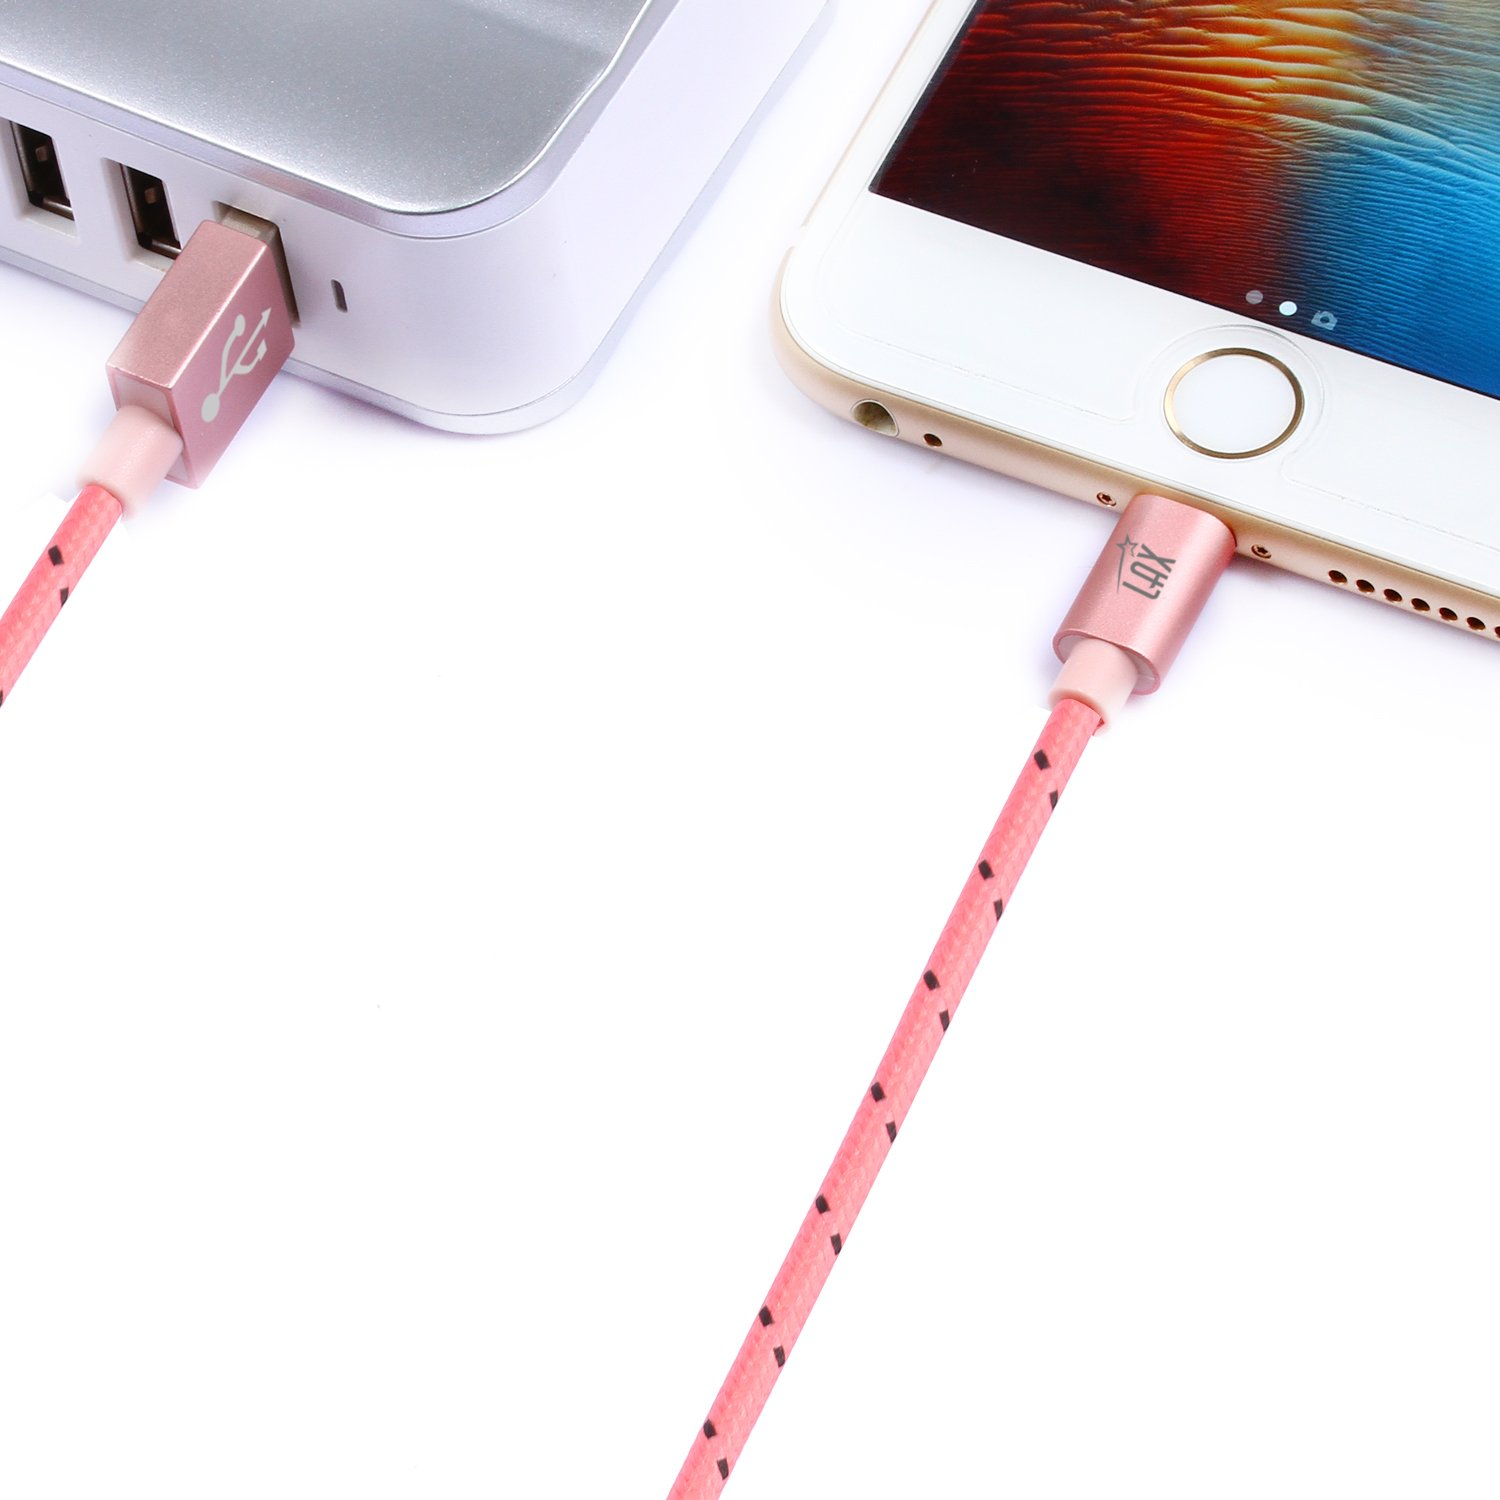 LAX Gadgets Extra Long Apple MFi Certified Nylon Lightning Cable Cord | 6 Ft - Pink by LAX Gadgets (Image #9)